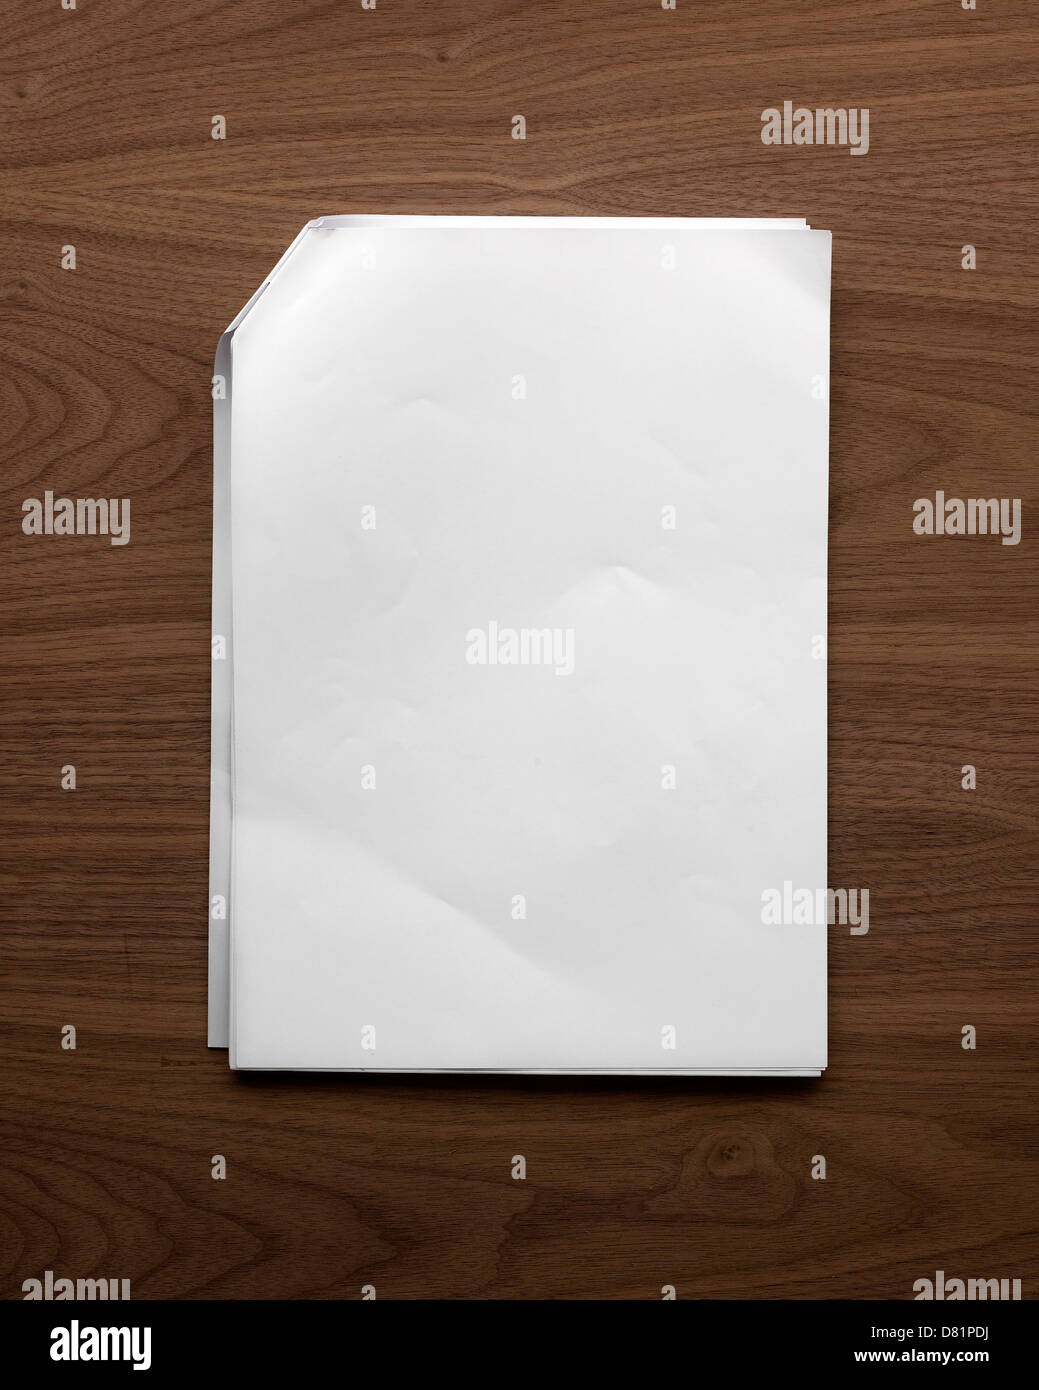 sheets of plain white paper stapled at the corner and folded over lying flat on a wooden table or desk shot from - Stock Image